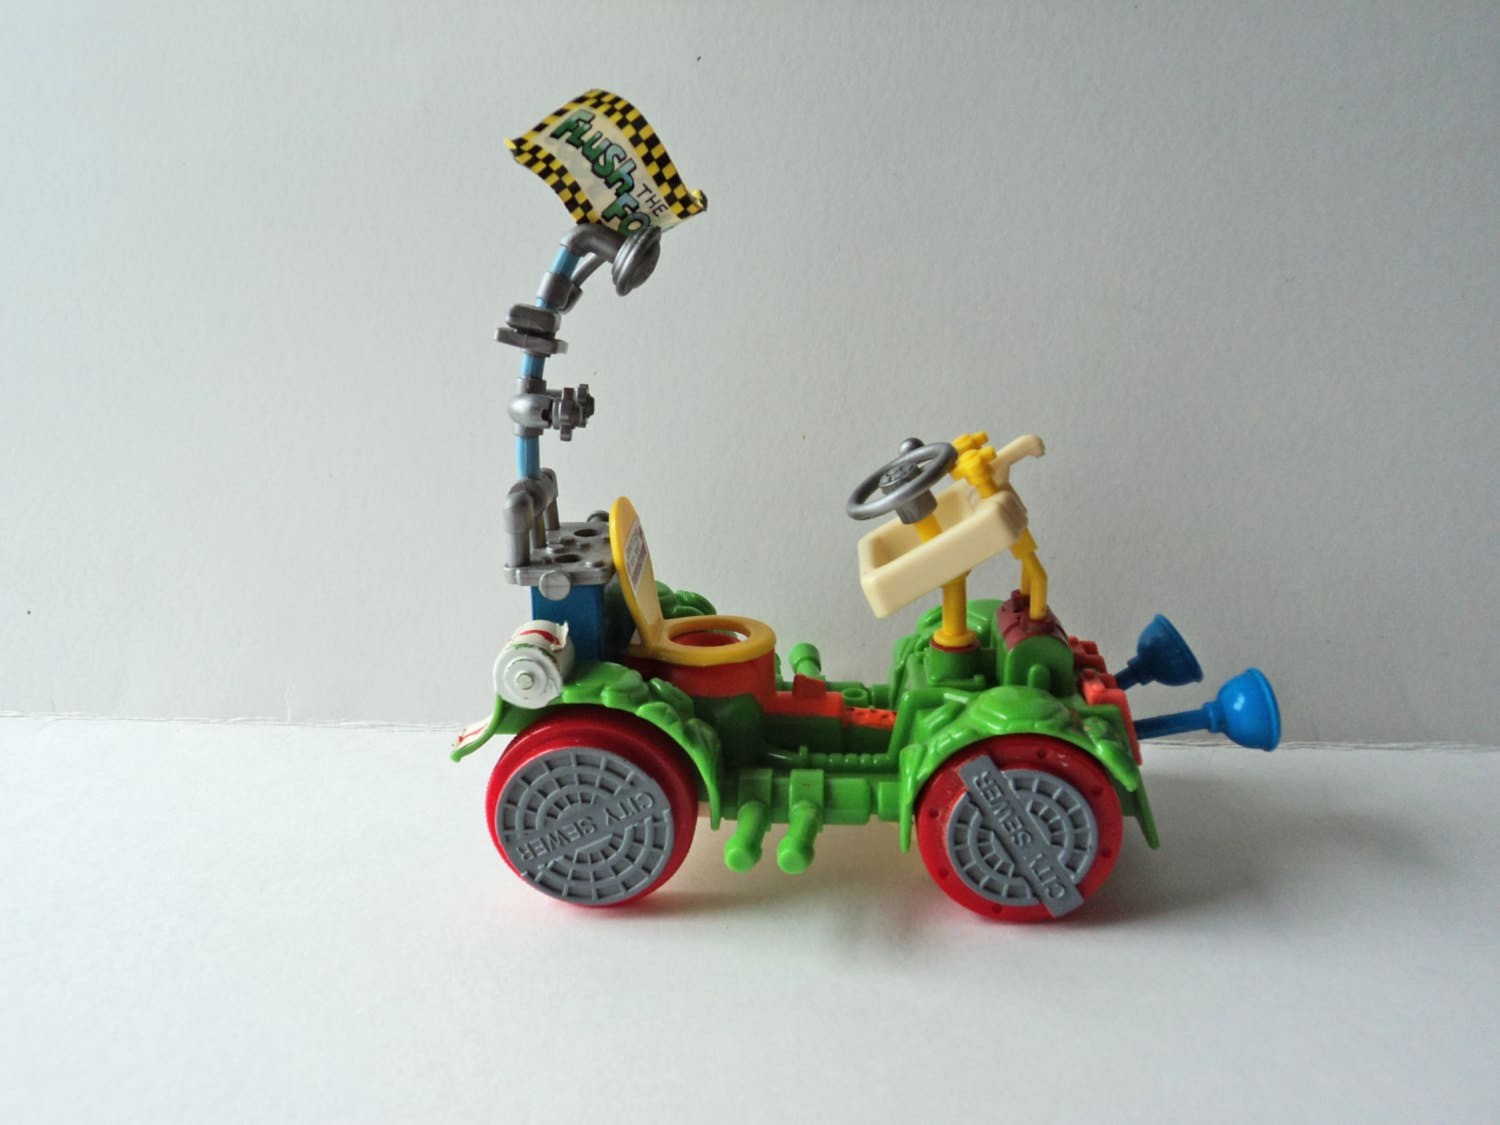 1990 S Toys : Tmnt toilet taxi vehicle toy figure playmates toys s